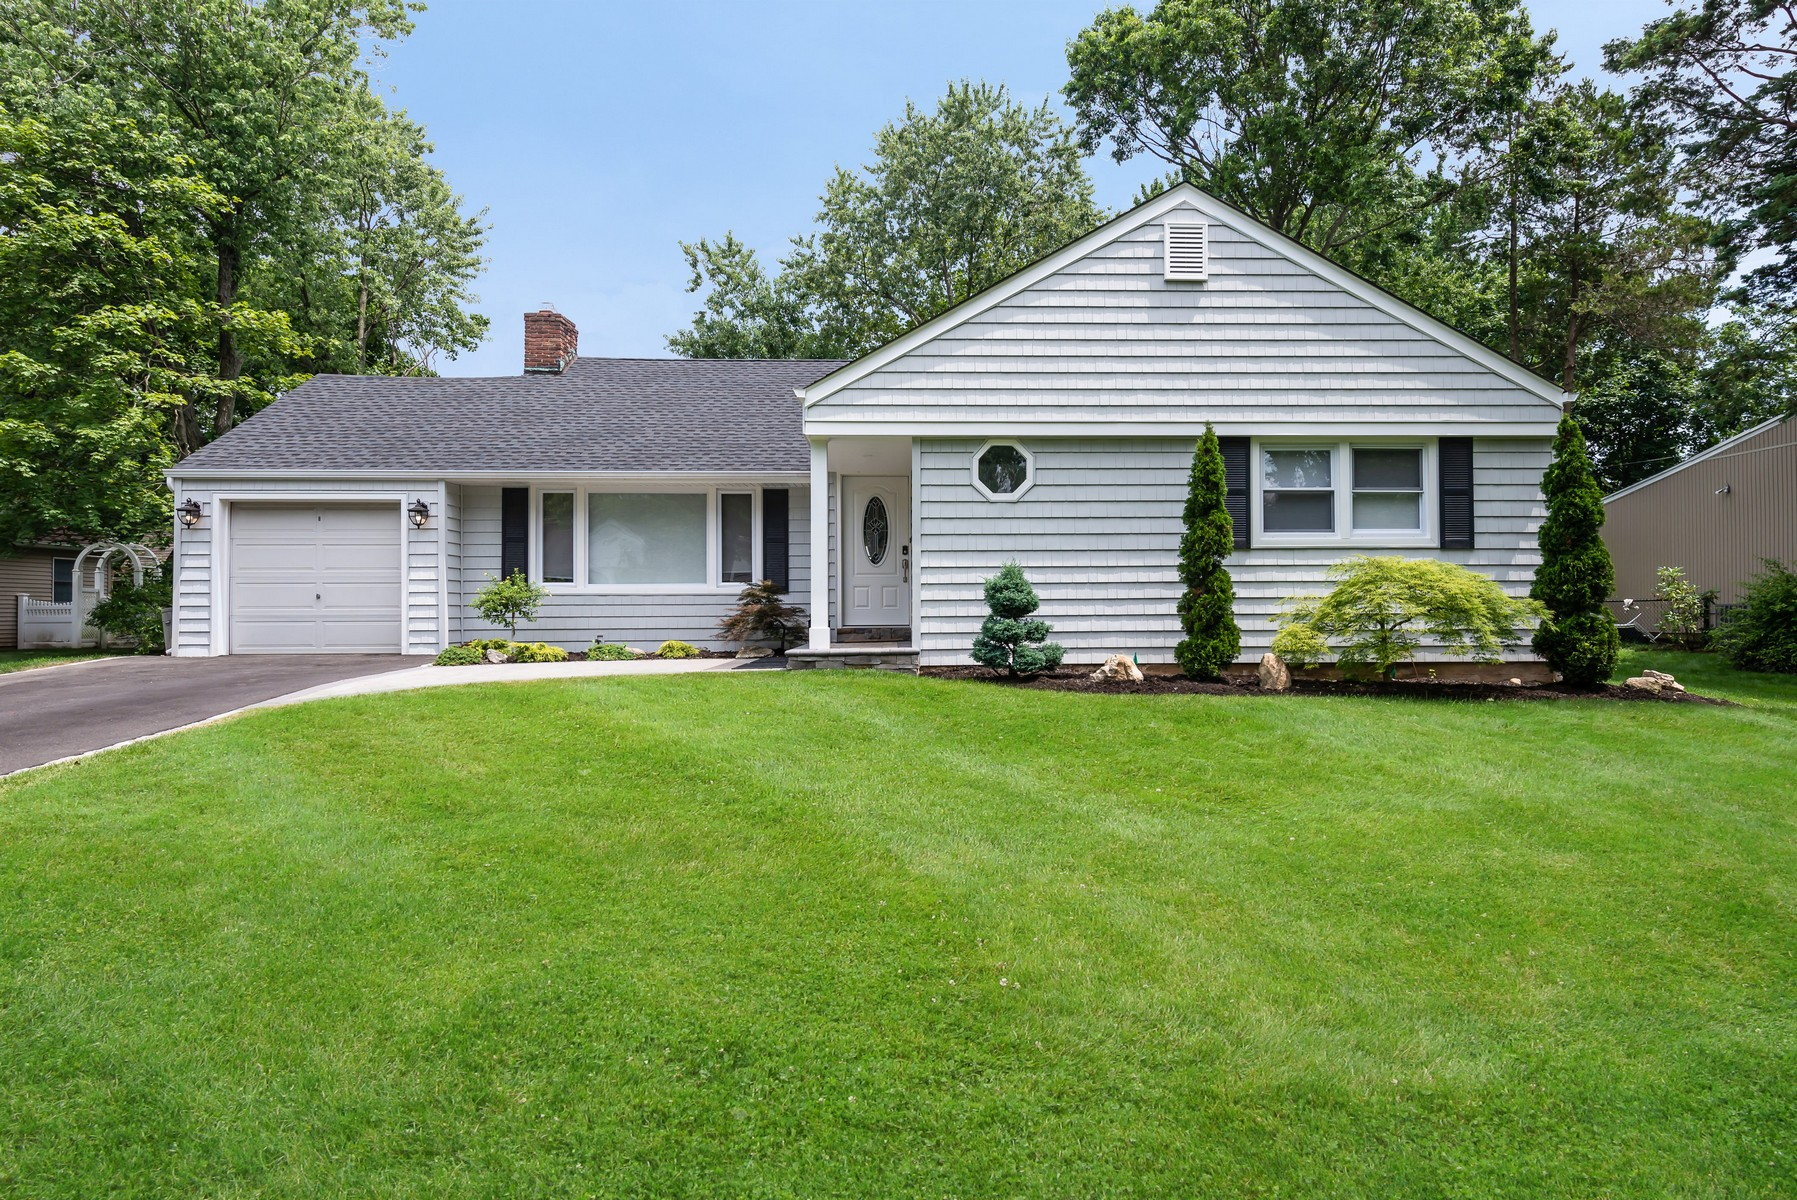 Single Family Homes for Active at East Hills 18 Midland Rd East Hills, New York 11577 United States